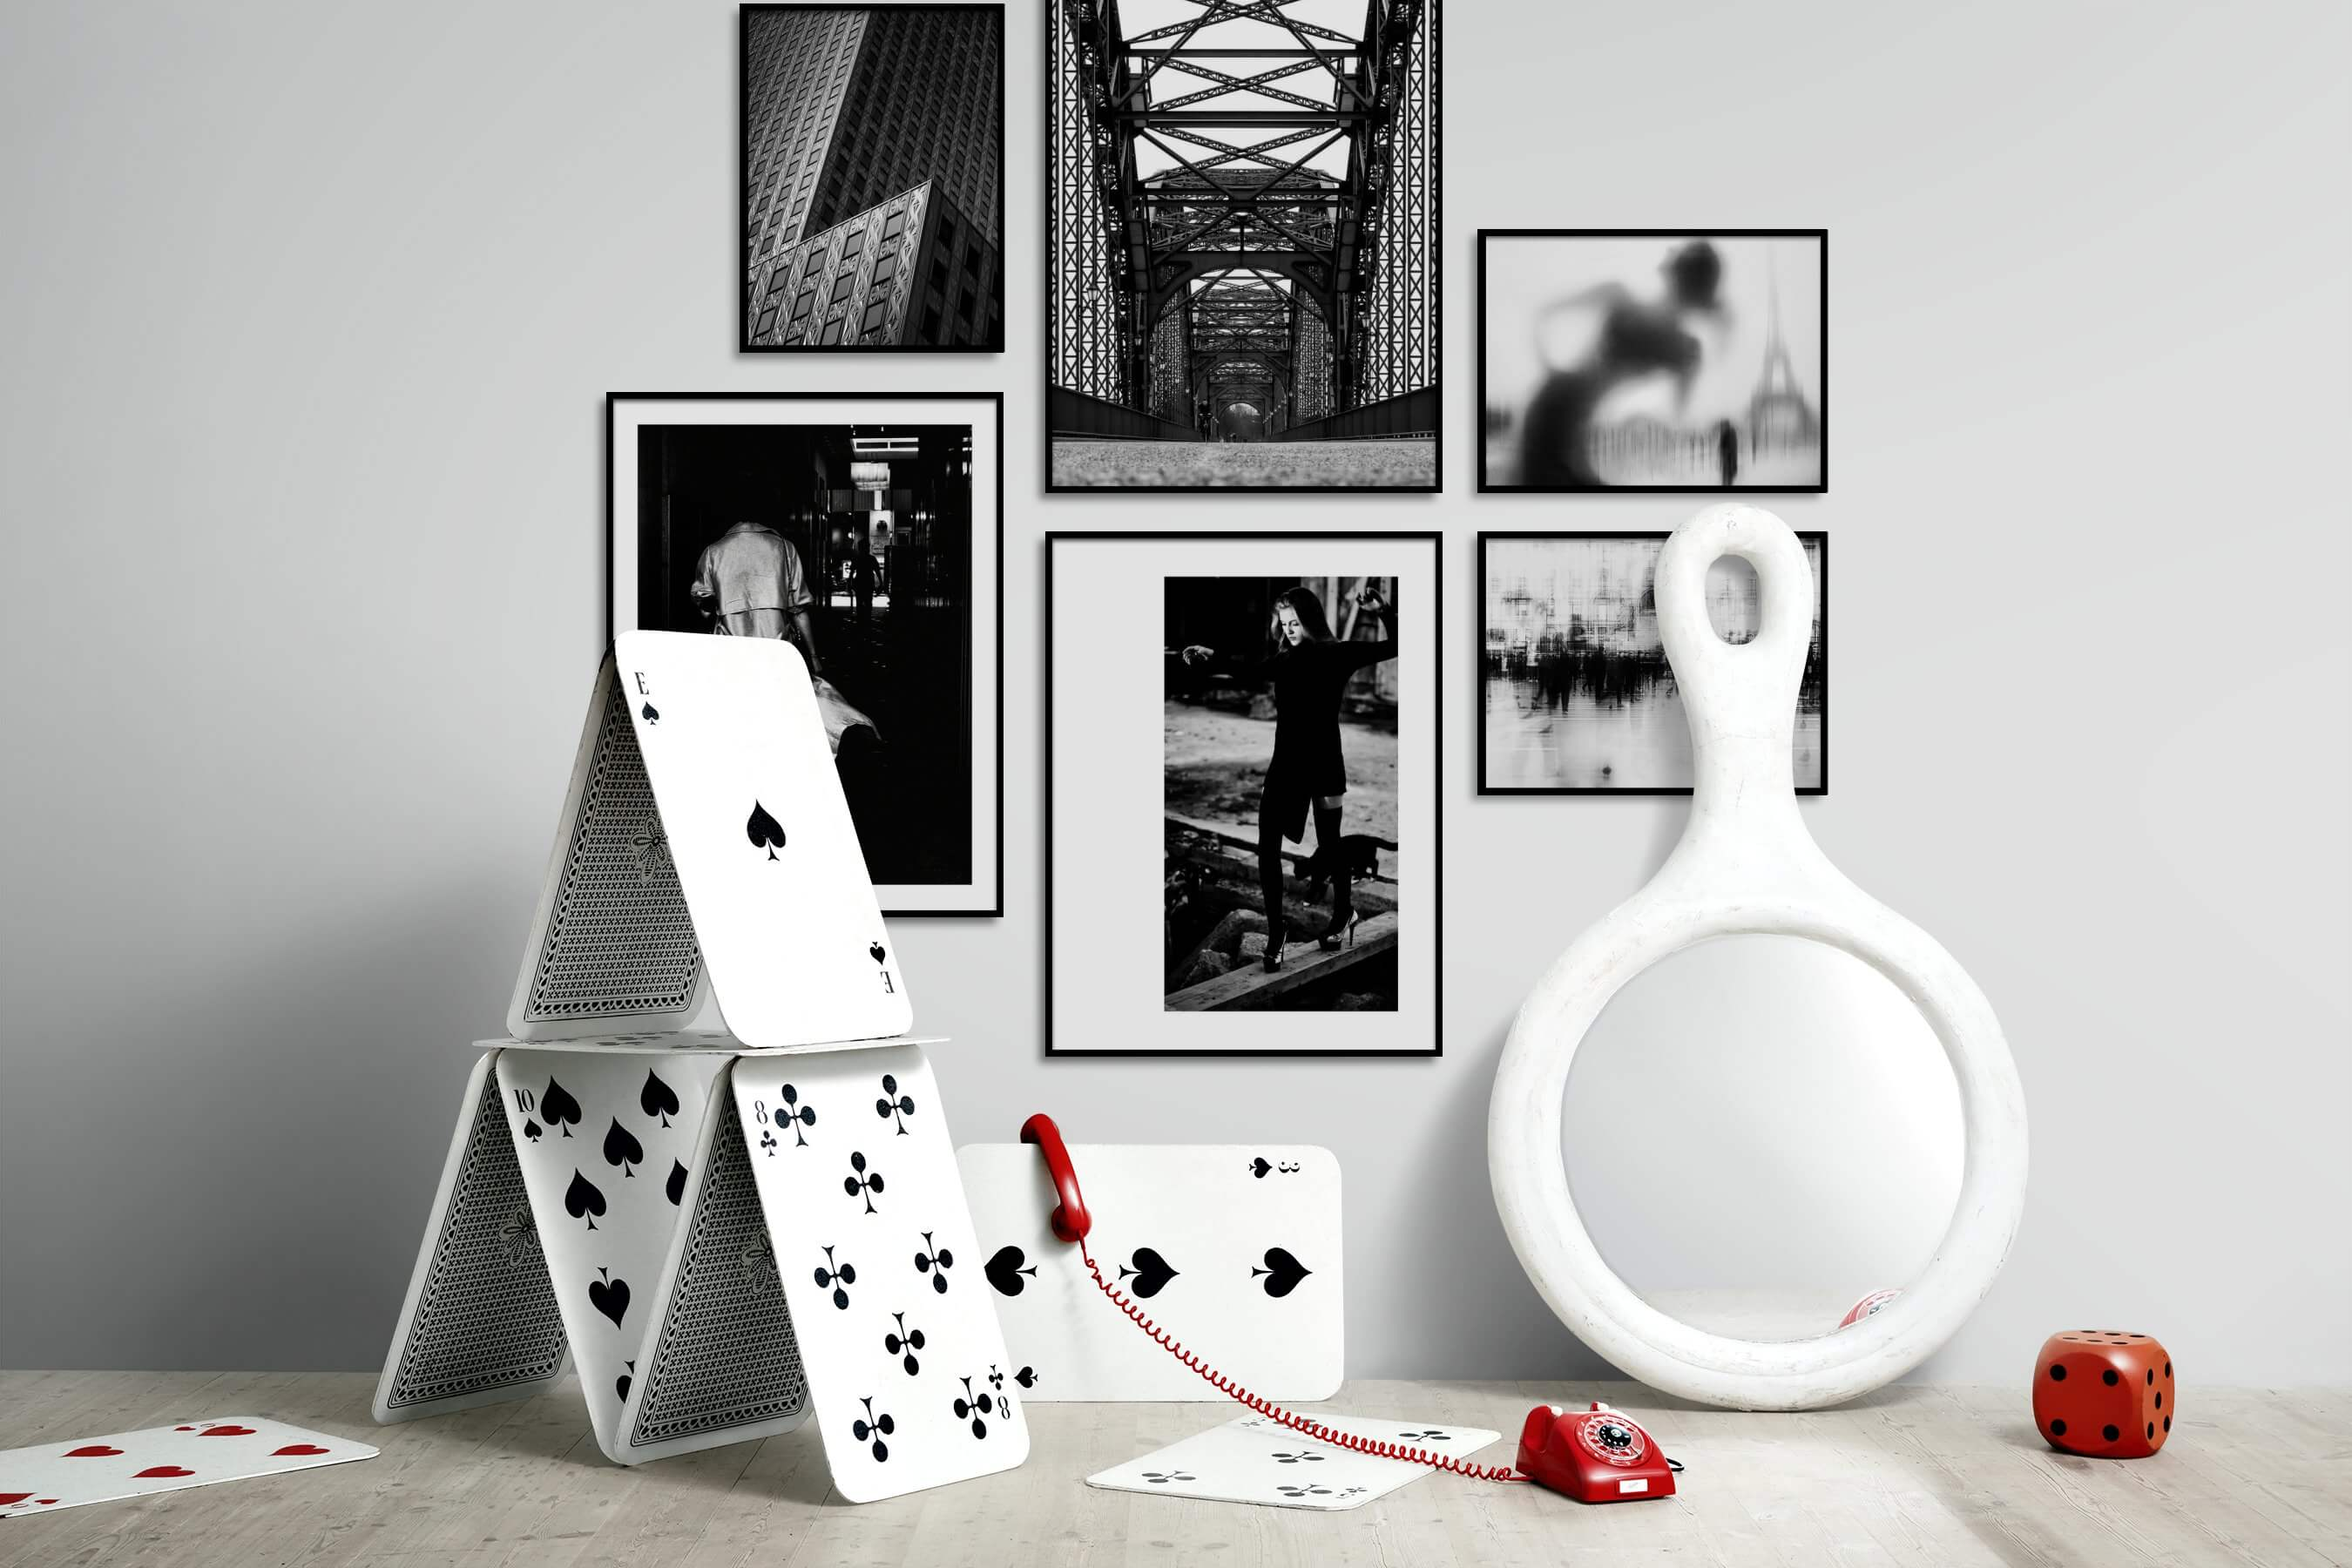 Gallery wall idea with six framed pictures arranged on a wall depicting Black & White, For the Moderate, City Life, Artsy, and Fashion & Beauty